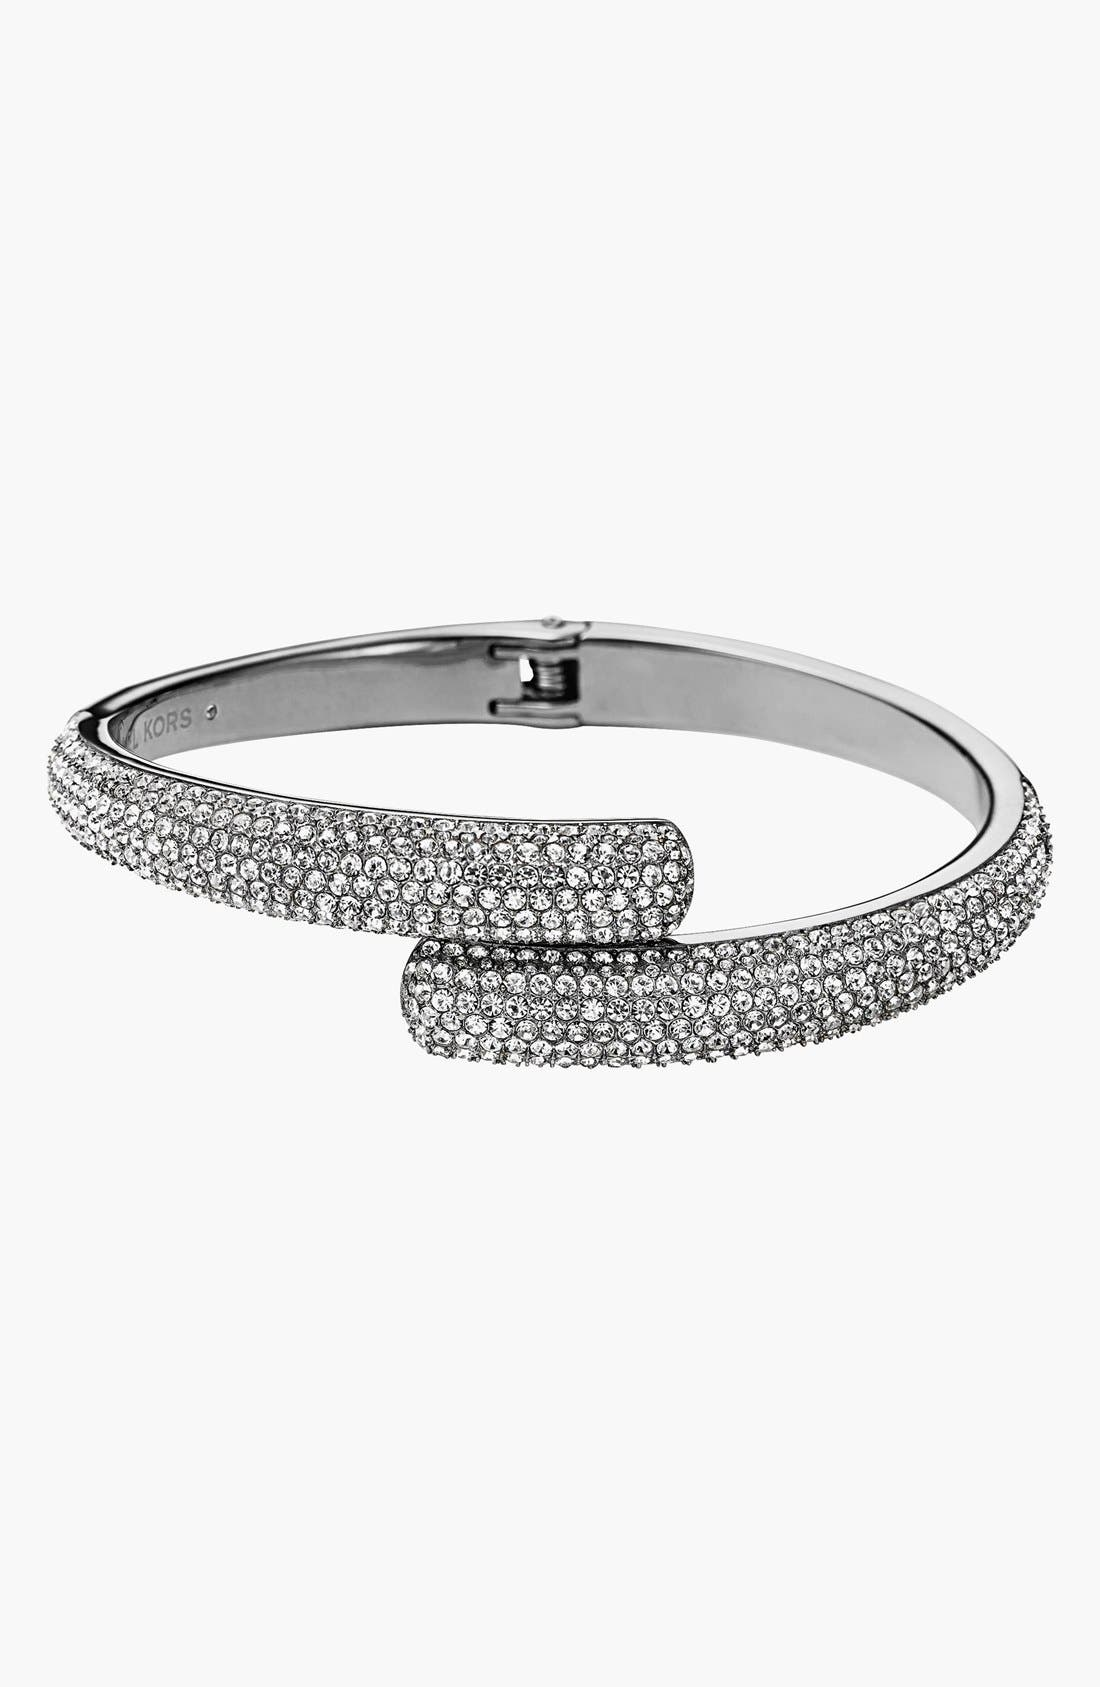 Main Image - Michael Kors Pavé Hinge Bangle